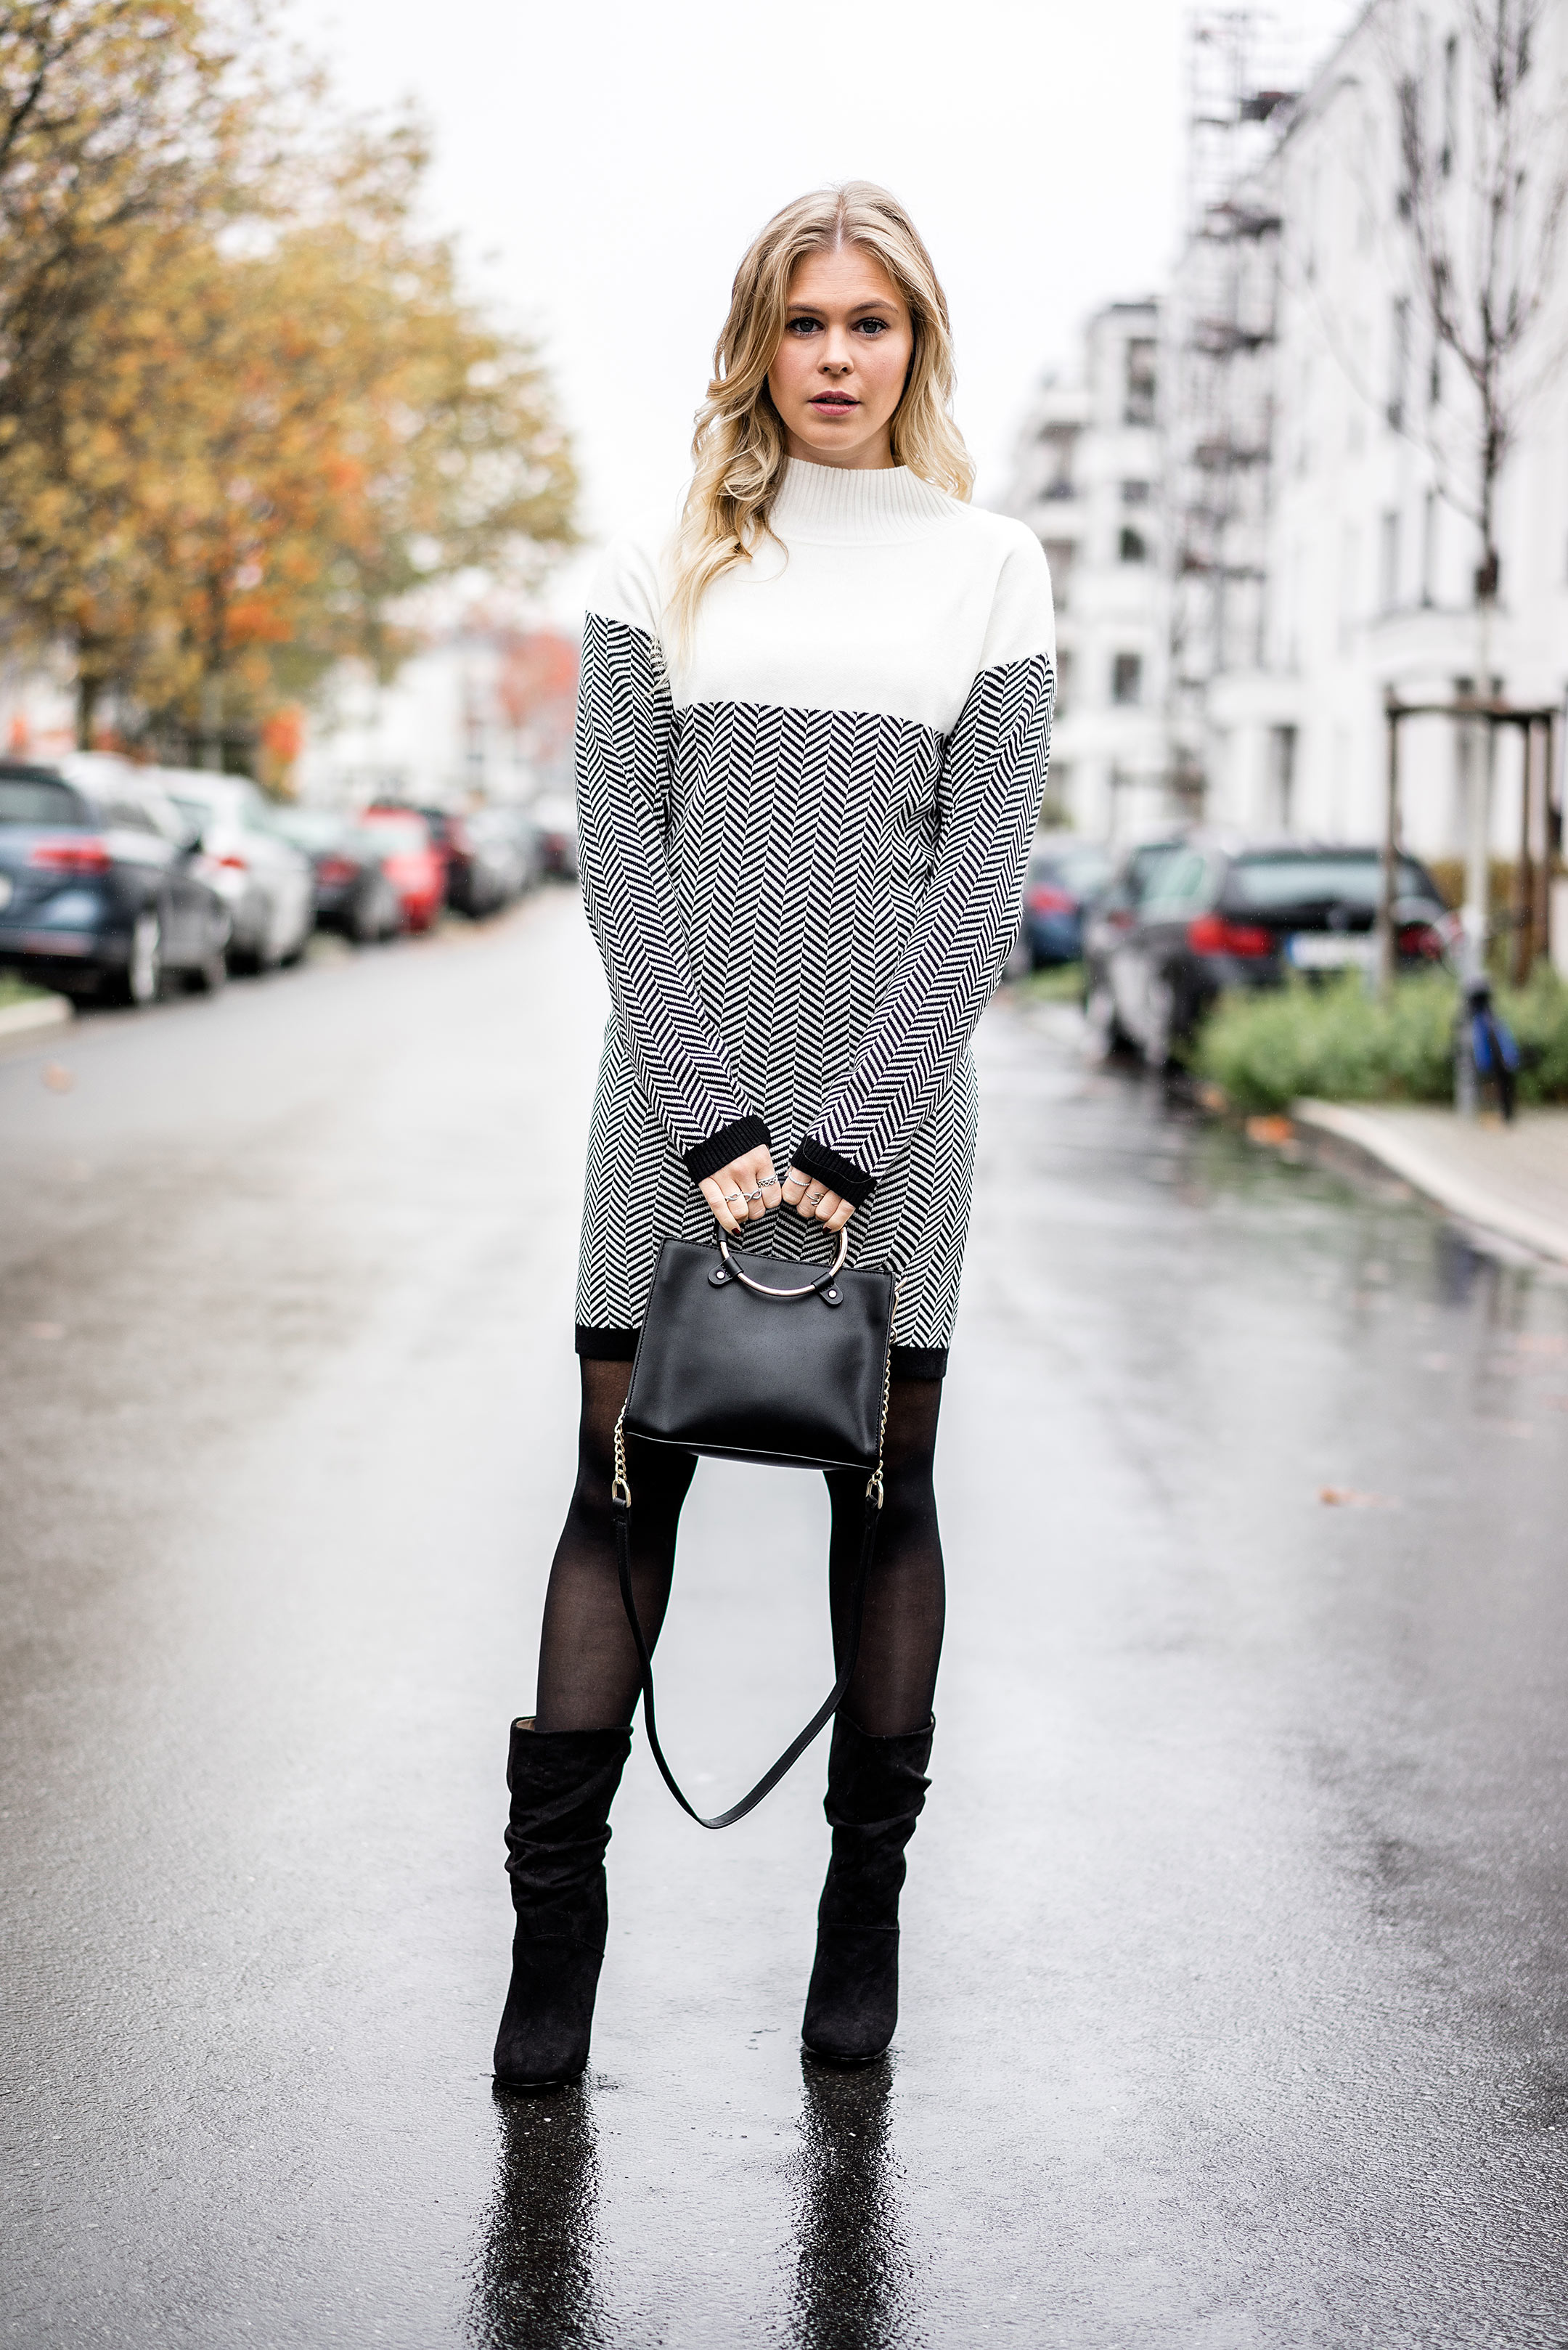 Sunnyinga Winterkleid Streetstyle Outfit ootd Slouch Boots Fashion Blogger